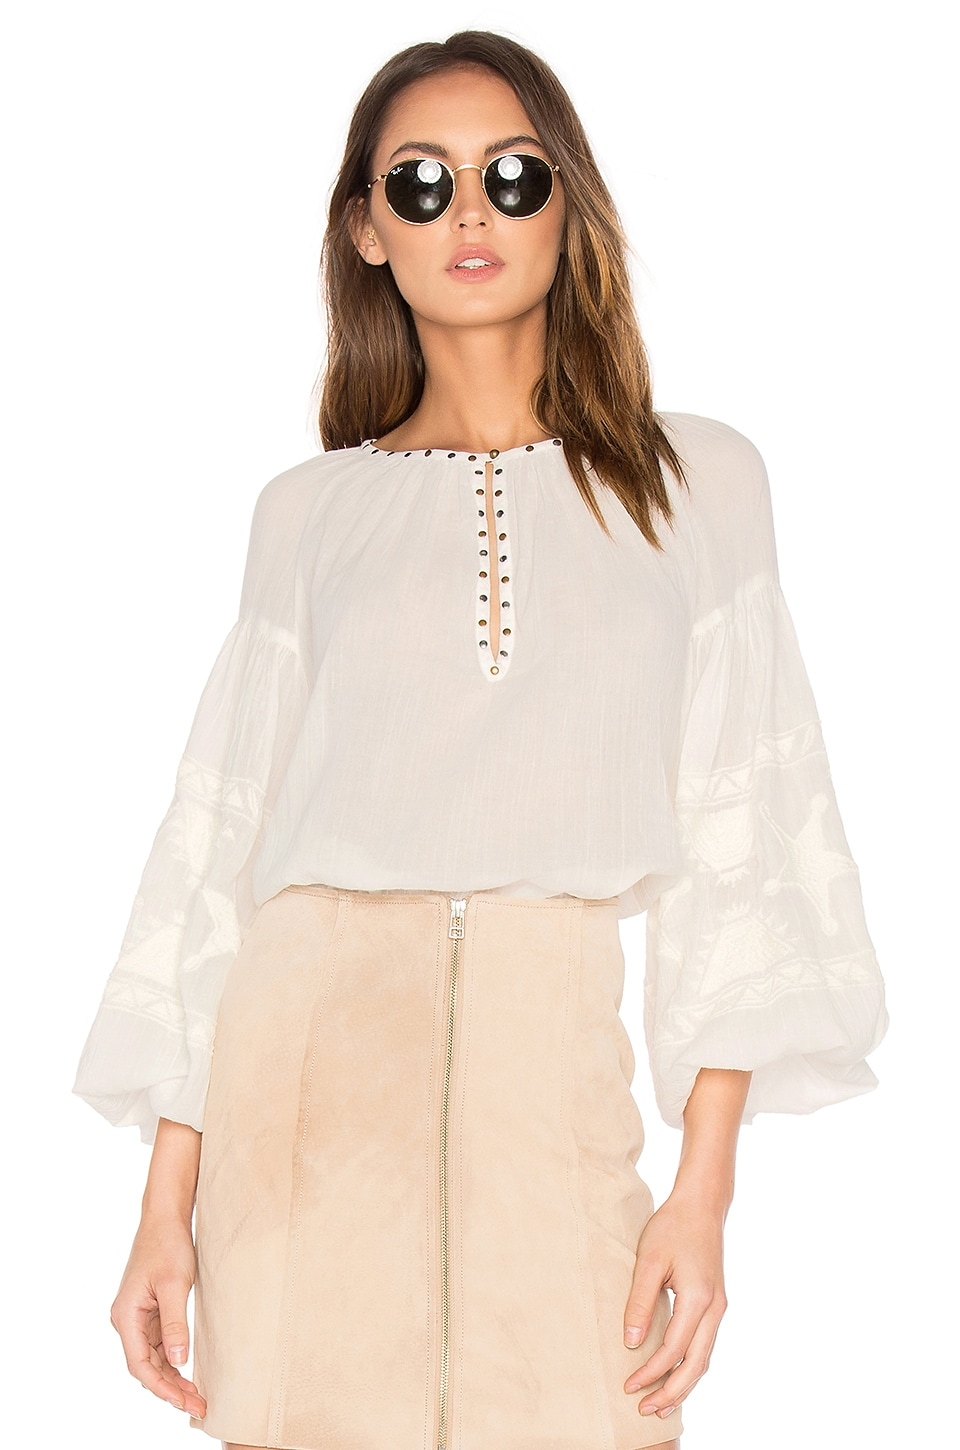 Maison Scotch Embroidered Tunic Top in Off White